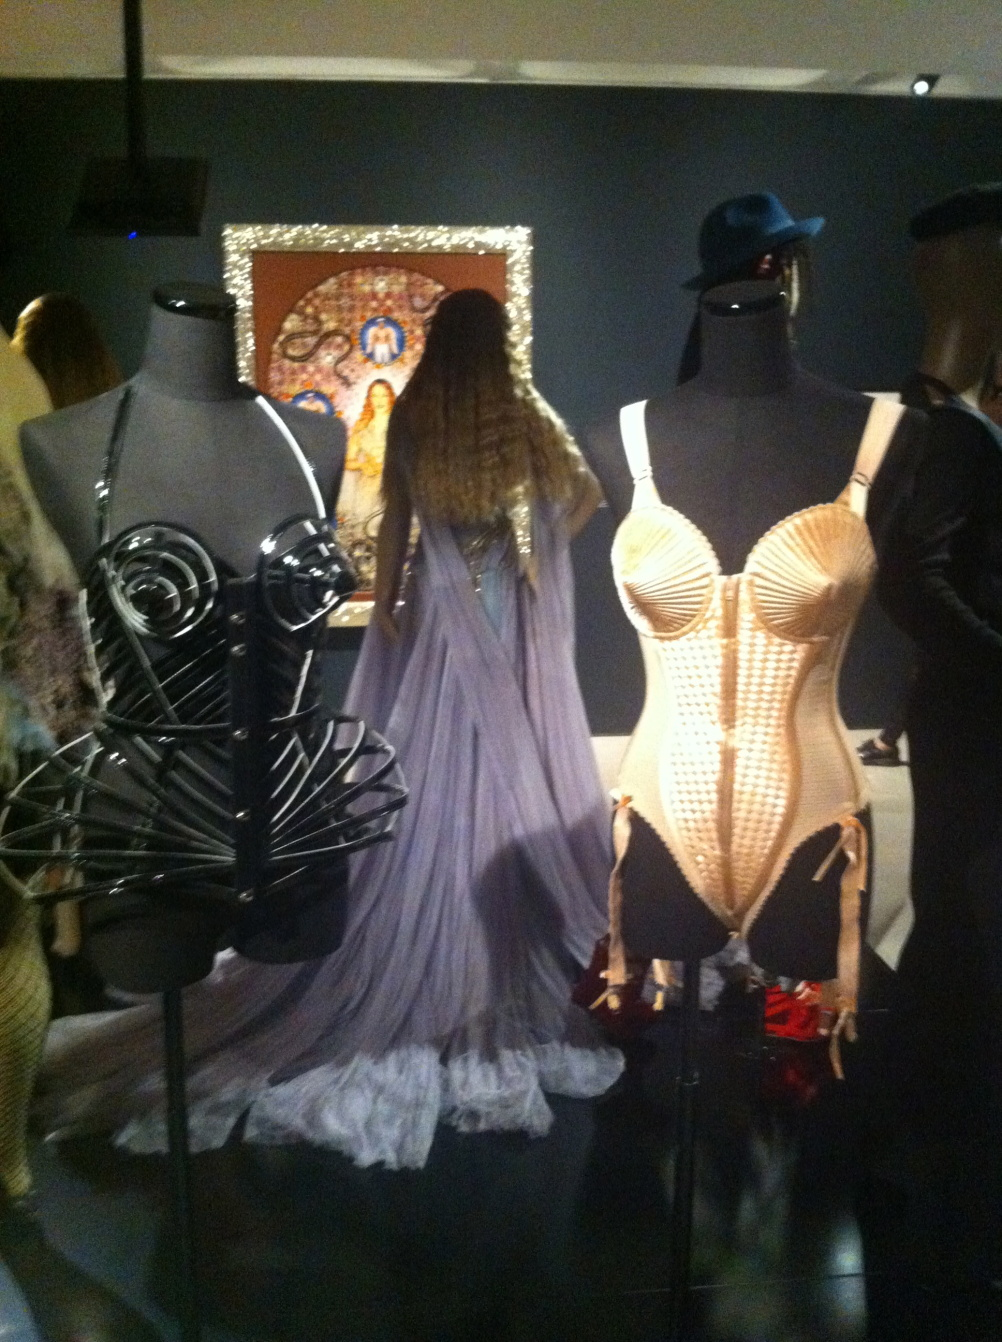 Corsetry including Madonna's 1990 Blond Ambition World Tour stage outfit